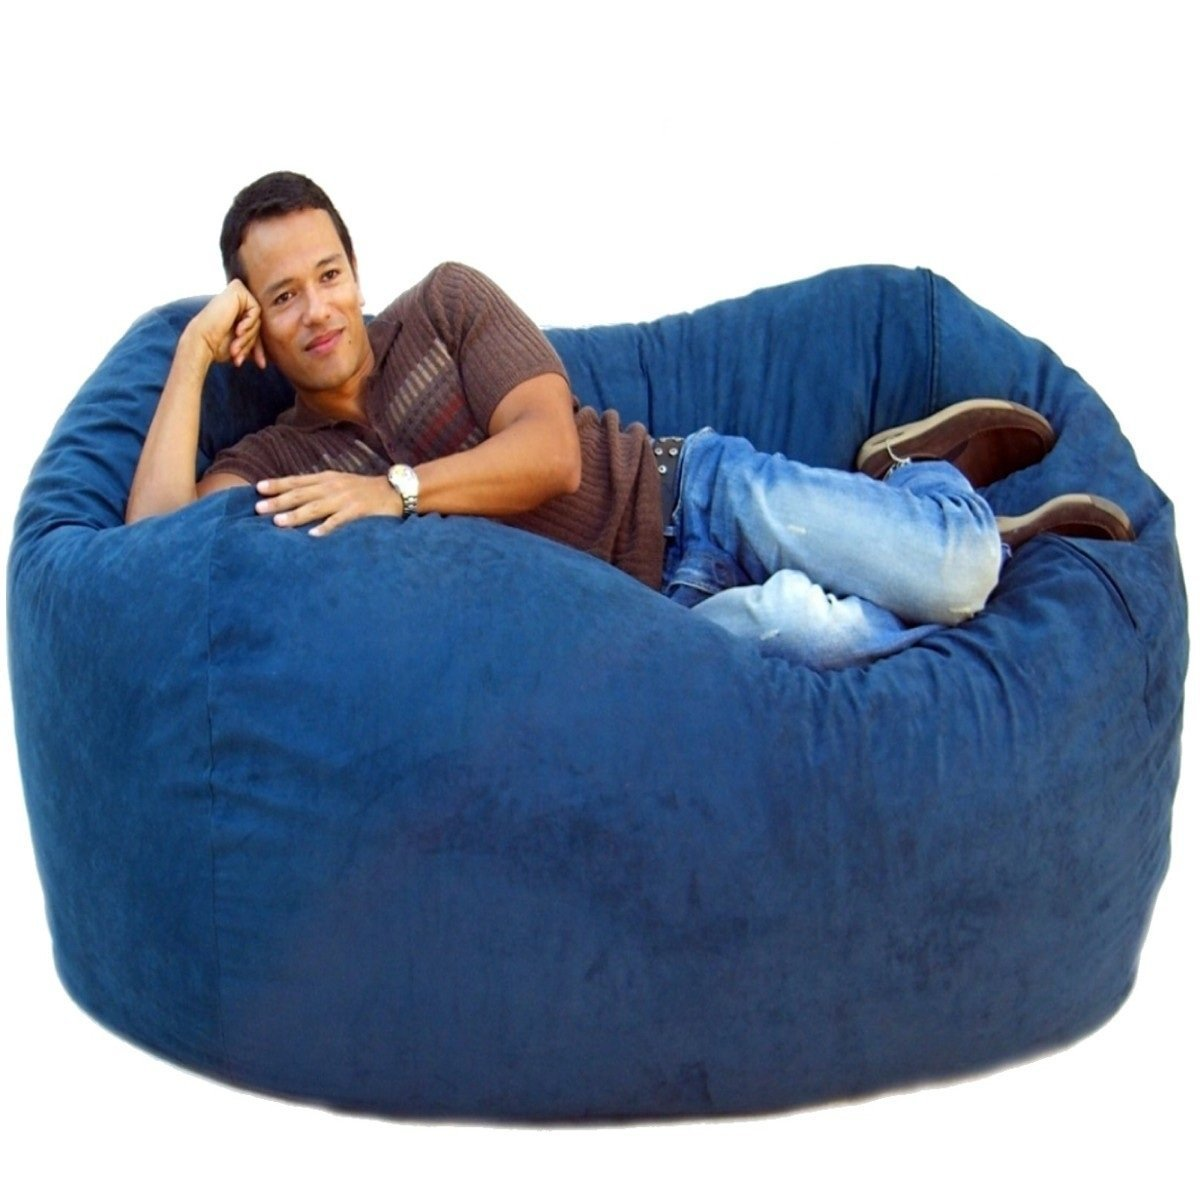 Blue Big Bean Bag Chairs Home Decor Ideas